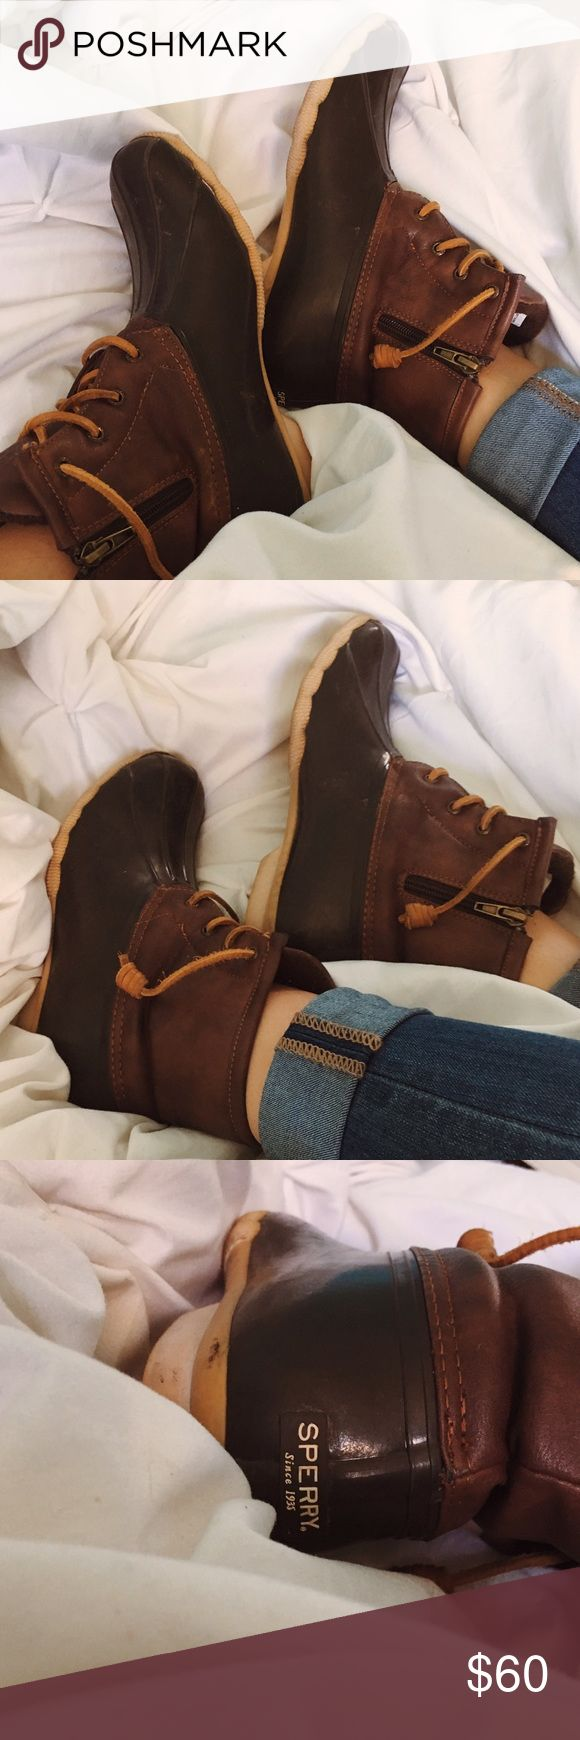 Brown Sperry Bean Boots Stylish and cute sperry bean boots. In great condition, just need to be cleaned up some (I will do this before shipment). Kids size 6 but are exactly like a women's size 8 [tags; duck boots // bean boots // LL bean boots // sperry bean boots] Sperry Shoes Winter & Rain Boots